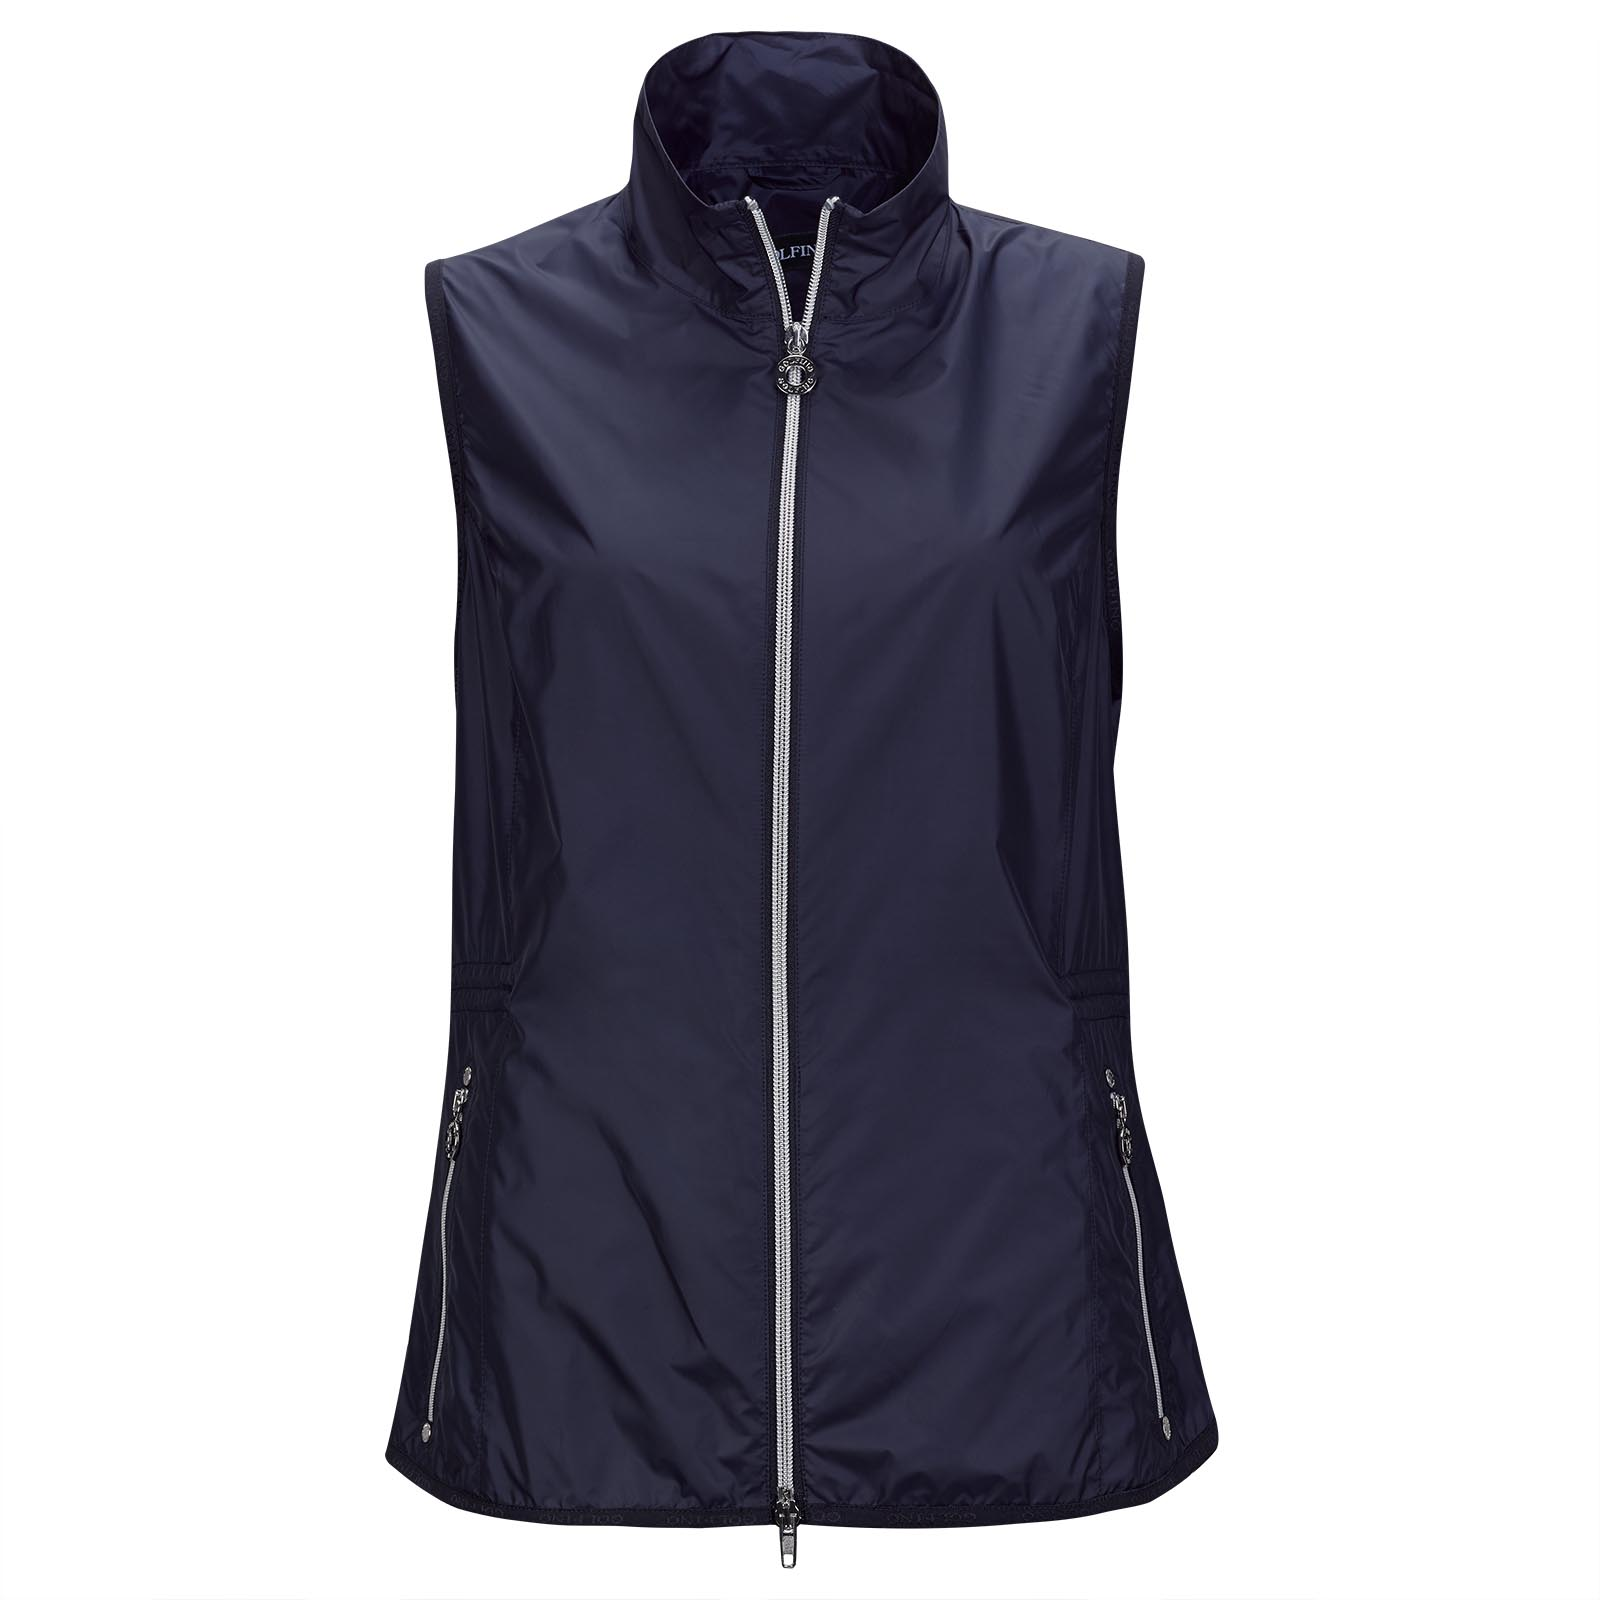 Ultra Lightweight and breathable Ladies' golf waistcoat with Wind Protection